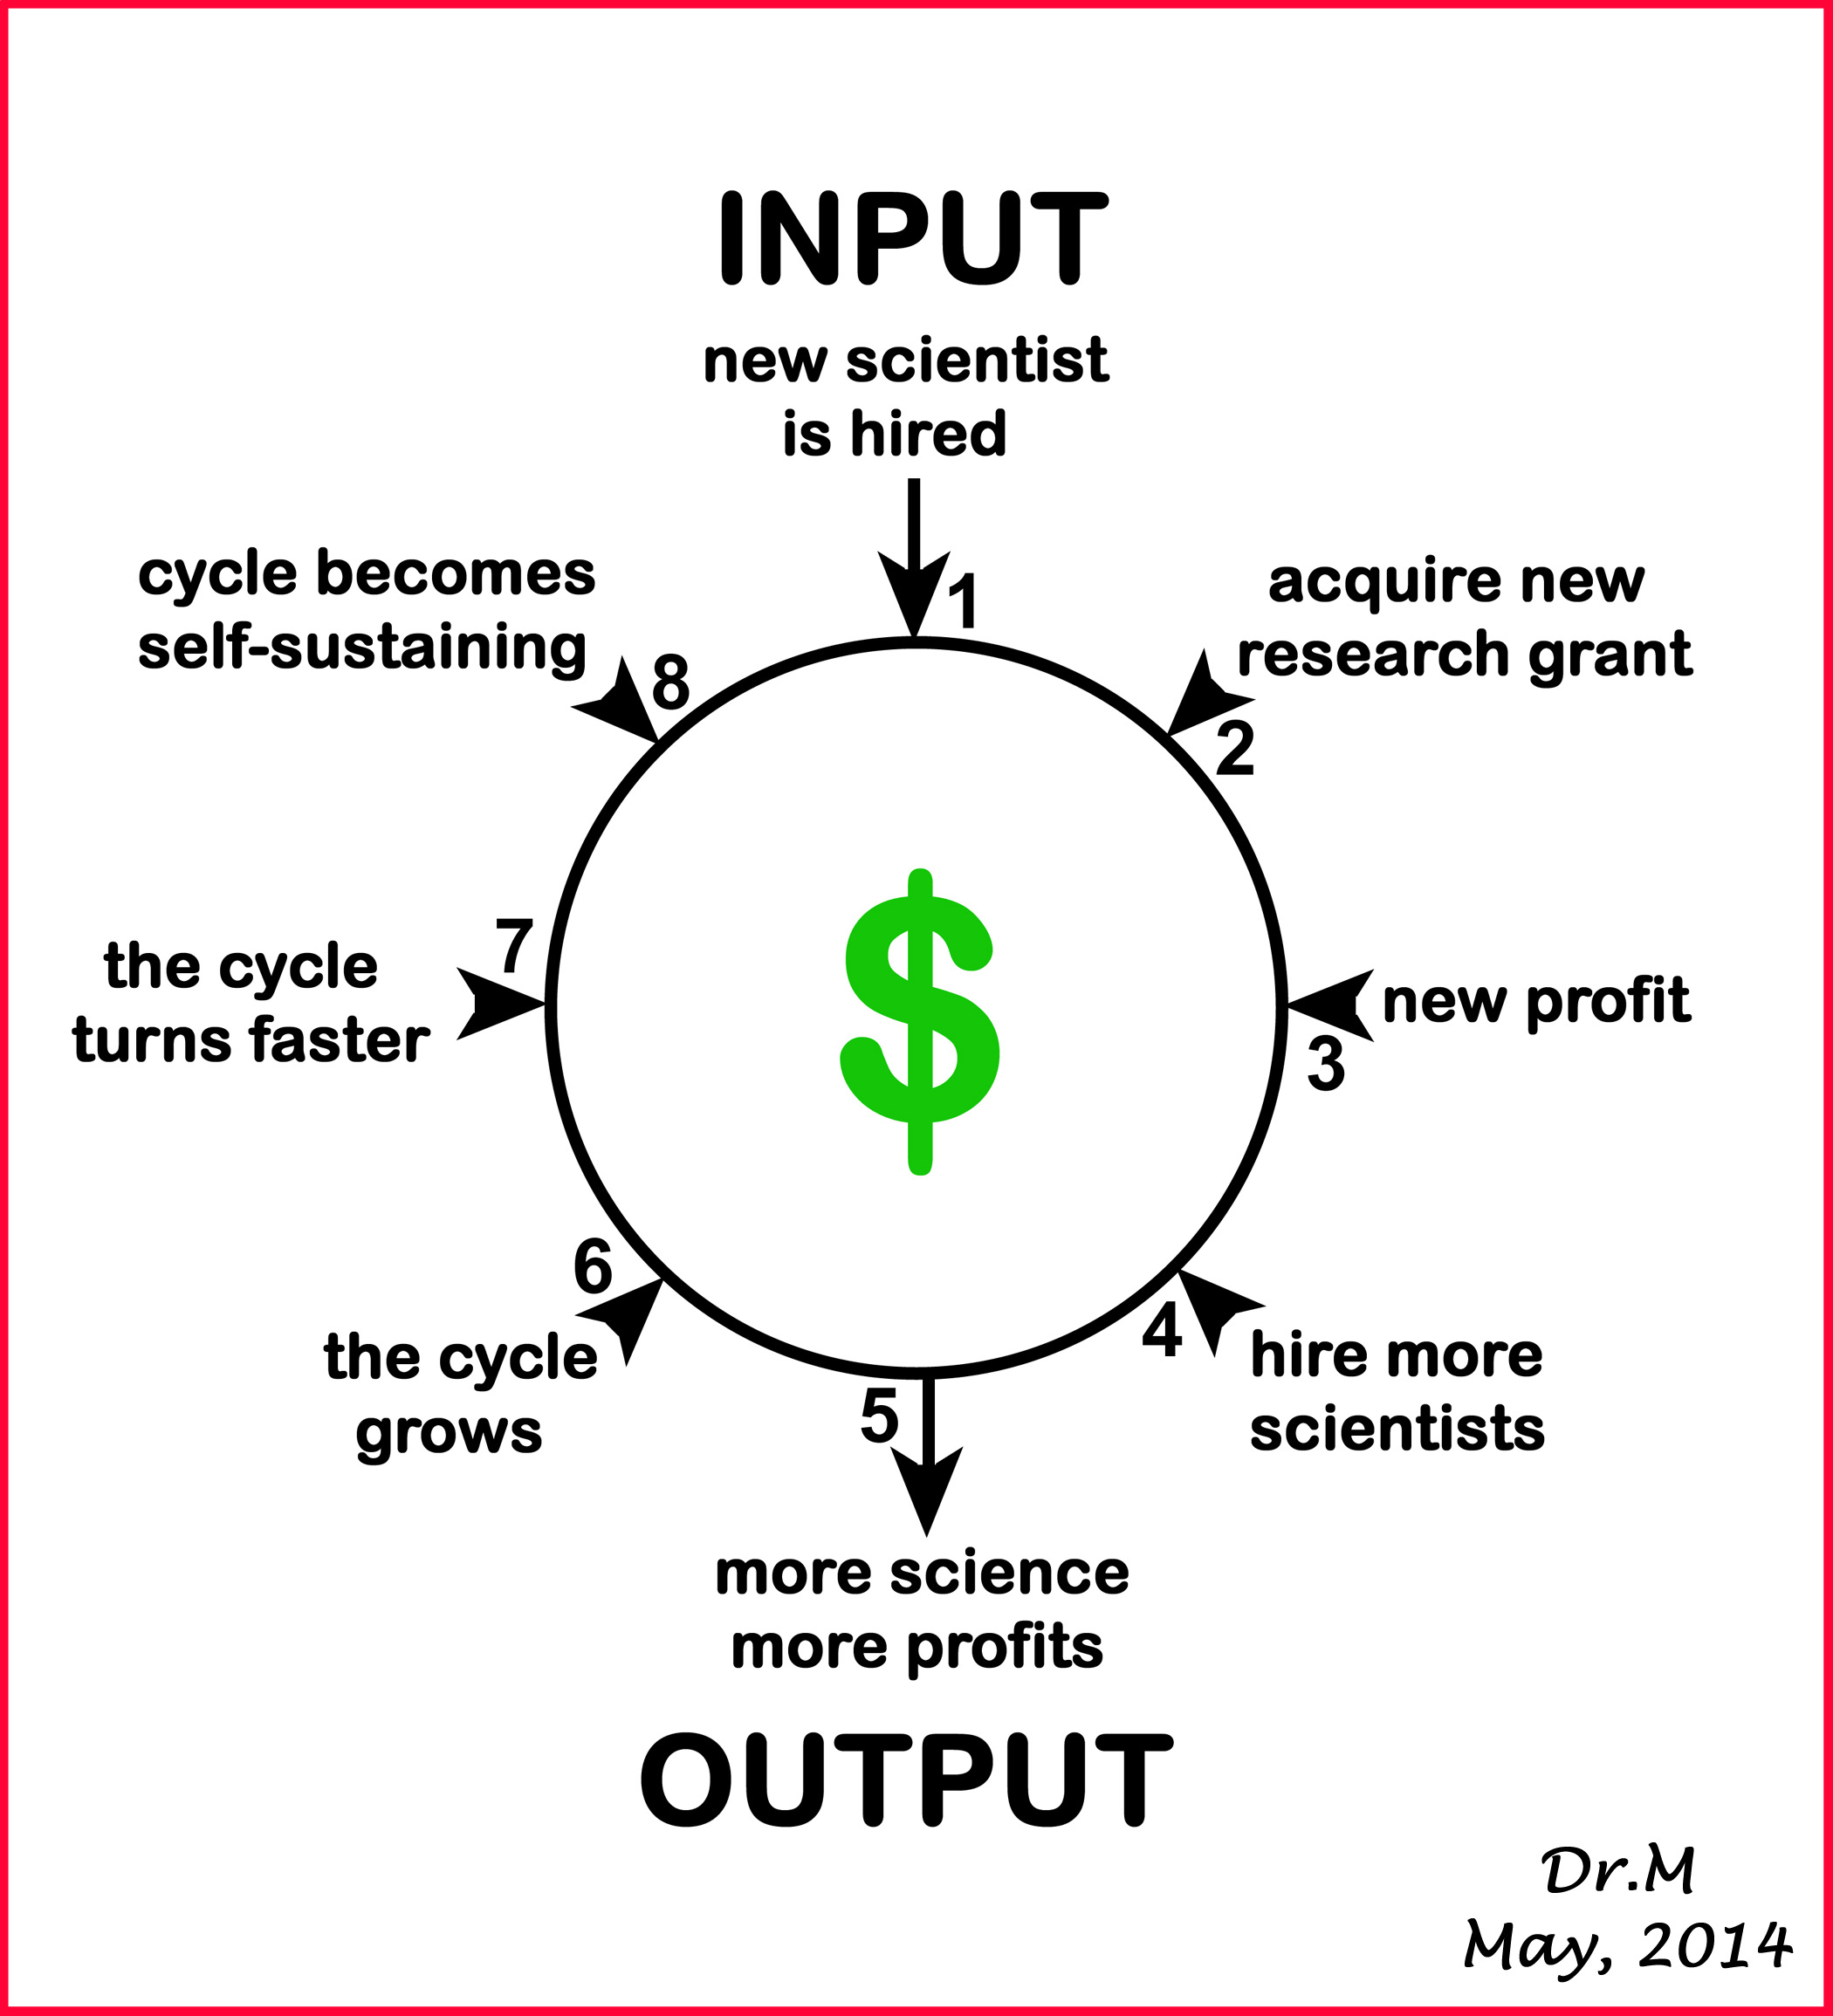 The Research Grant Cycle